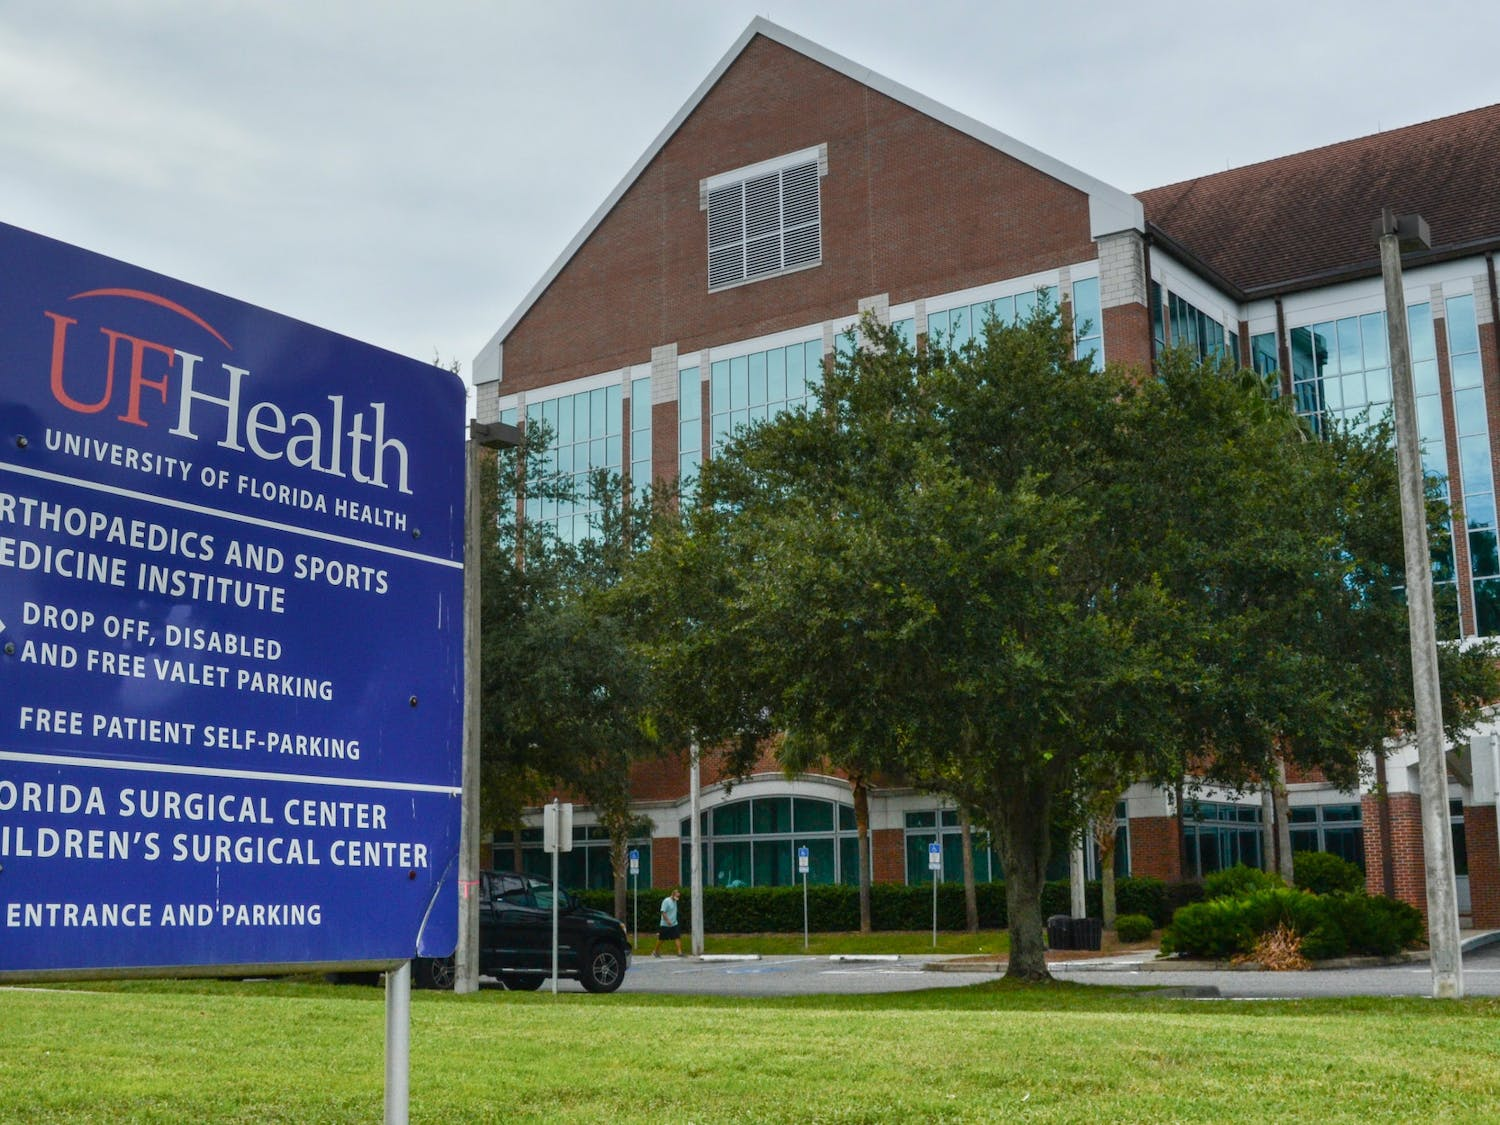 The UF Health Orthopaedics ans Sports Medicine Institute, located at 3450 SW Hull Road on Tuesday, July 27, 2021. The building, which houses comprehensive rehabilitation services, is one of many UF College of Medicine ventures operating under the new department of physical medicine and rehabilitation, the college's first new clinical department in 30 years.